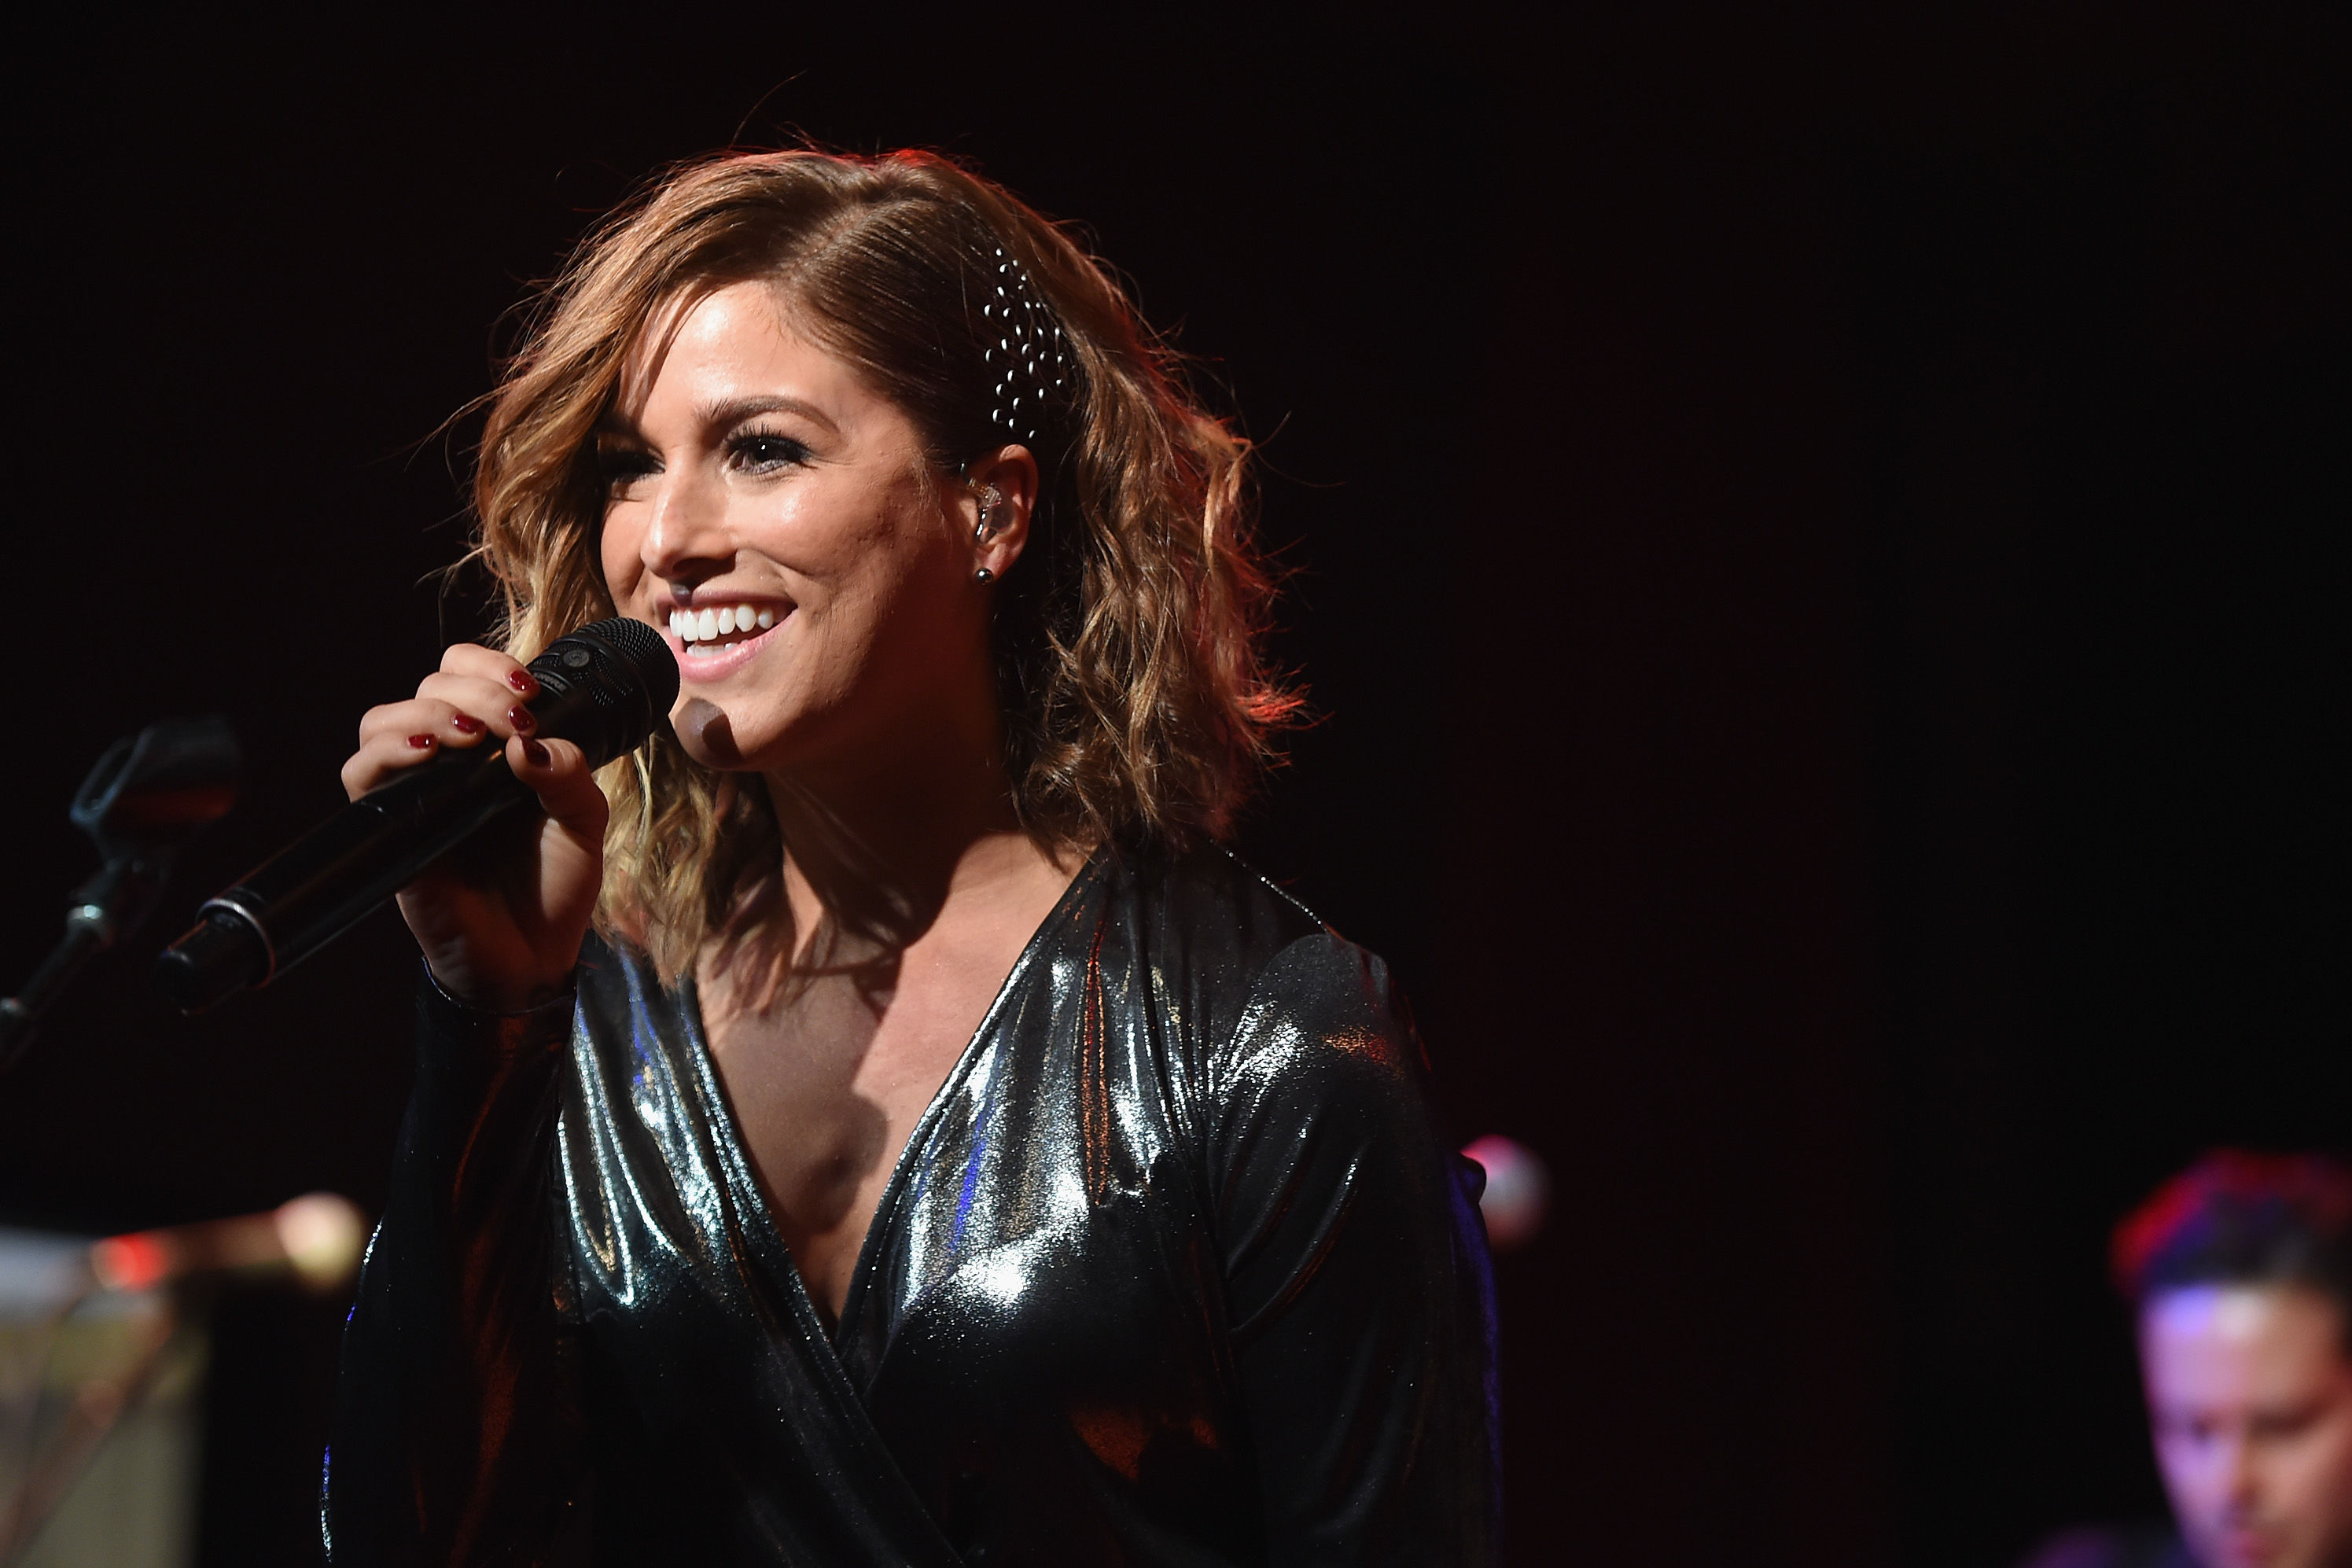 Cassadee Pope On Funk Music, Her First Number One, and Nashville's 'Killer Brunch'